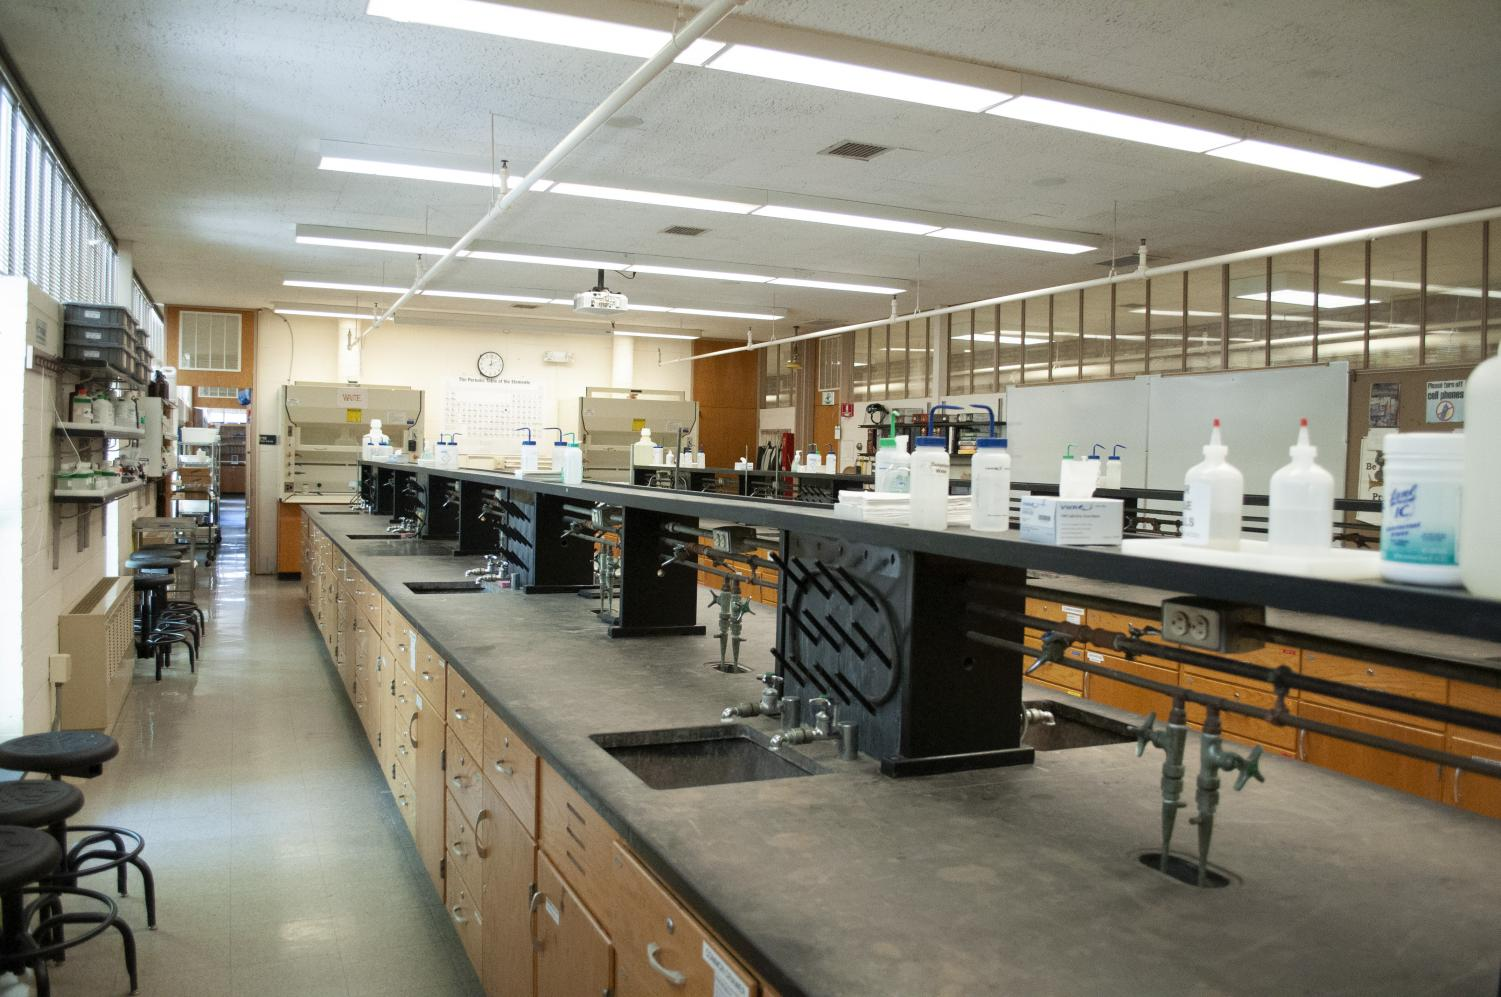 The county executive's proposed budget eliminates funding college administrators had planned to use to update the Dragun building's science labs.